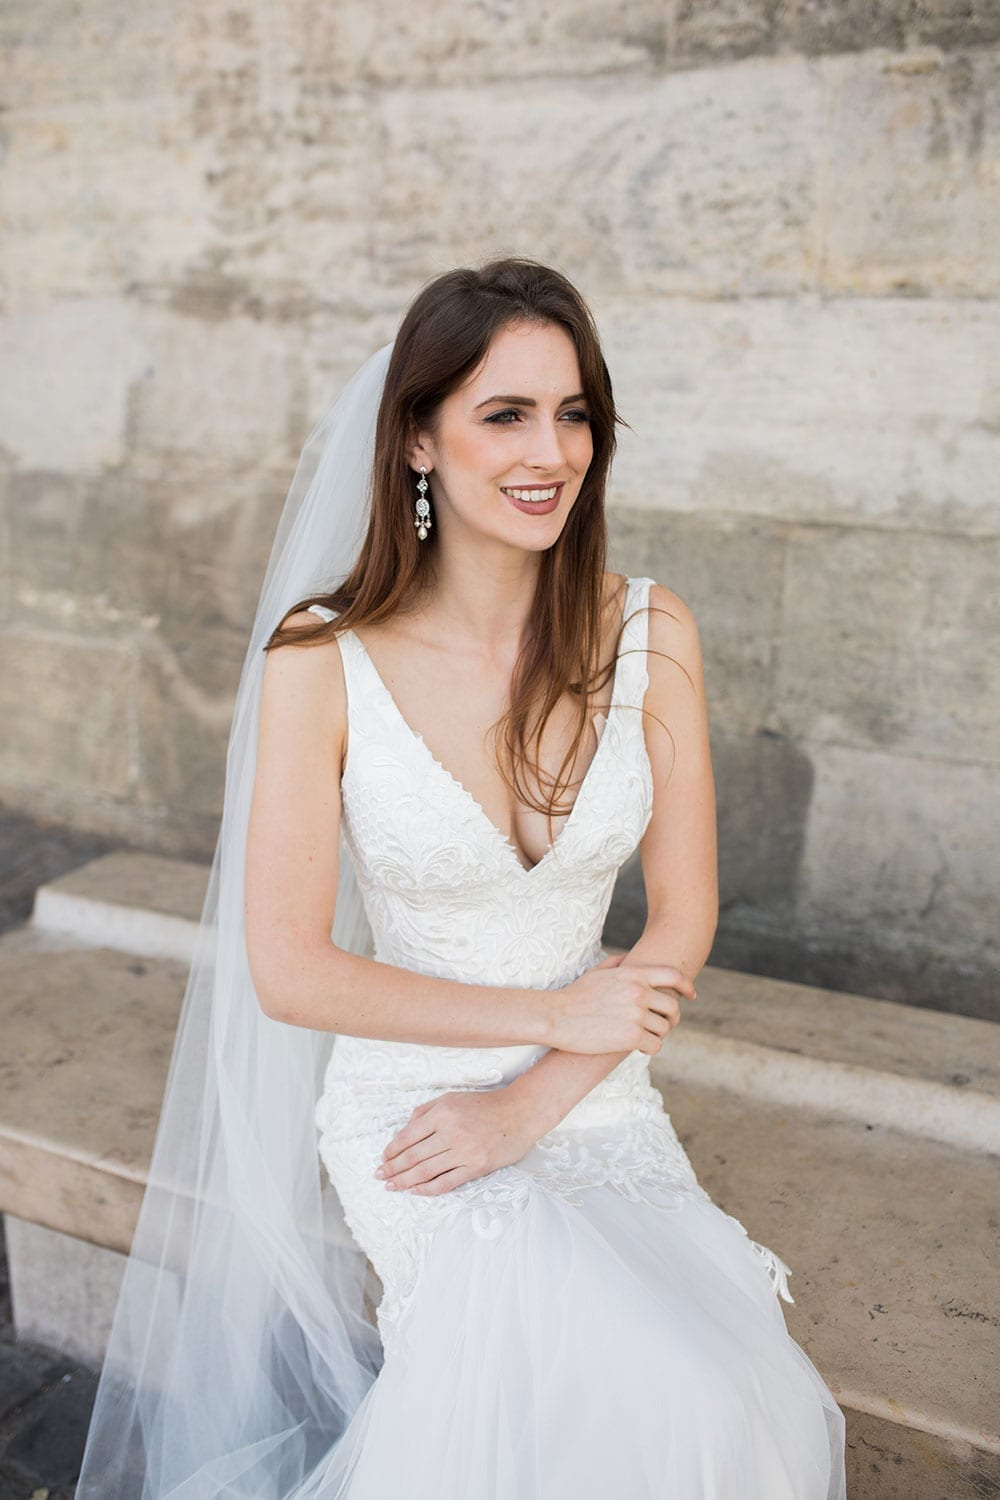 Model wearing Vinka Design Joanna Wedding Dress, a gorgeous wedding dress made with six different laces to create the beautiful bodice detail. The gown is a slim fit with a deep V neck and silk and tulle skirt. Worn seated in Paris.